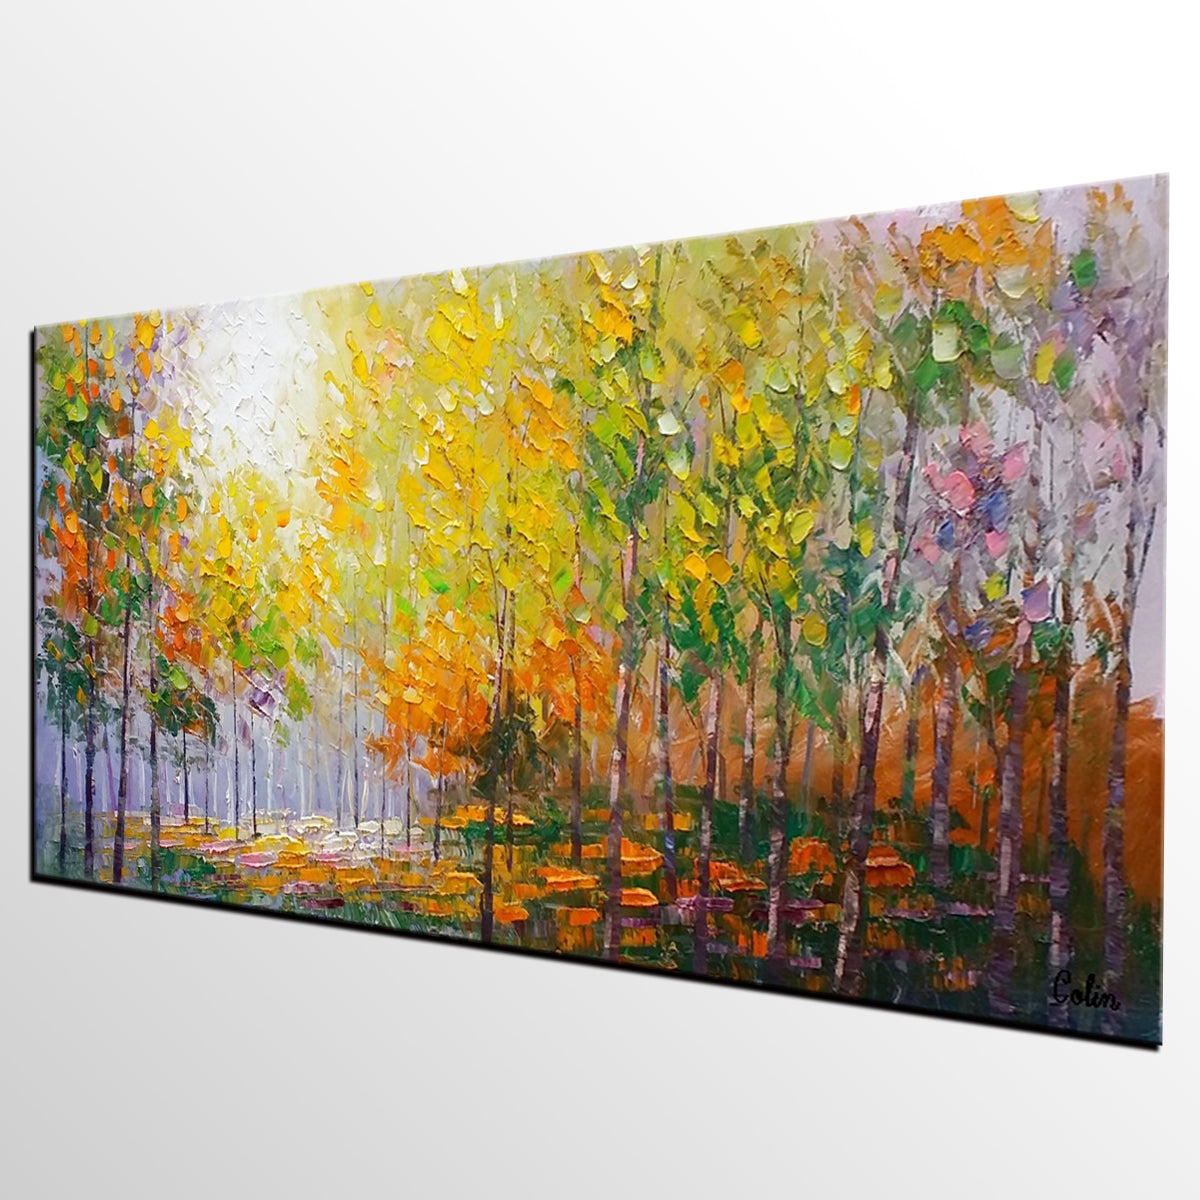 Living Room Wall Art, Landscape Painting, Oil Painting, Abstract Painting, Large Art, Canvas Art, Modern Art, Canvas Painting,